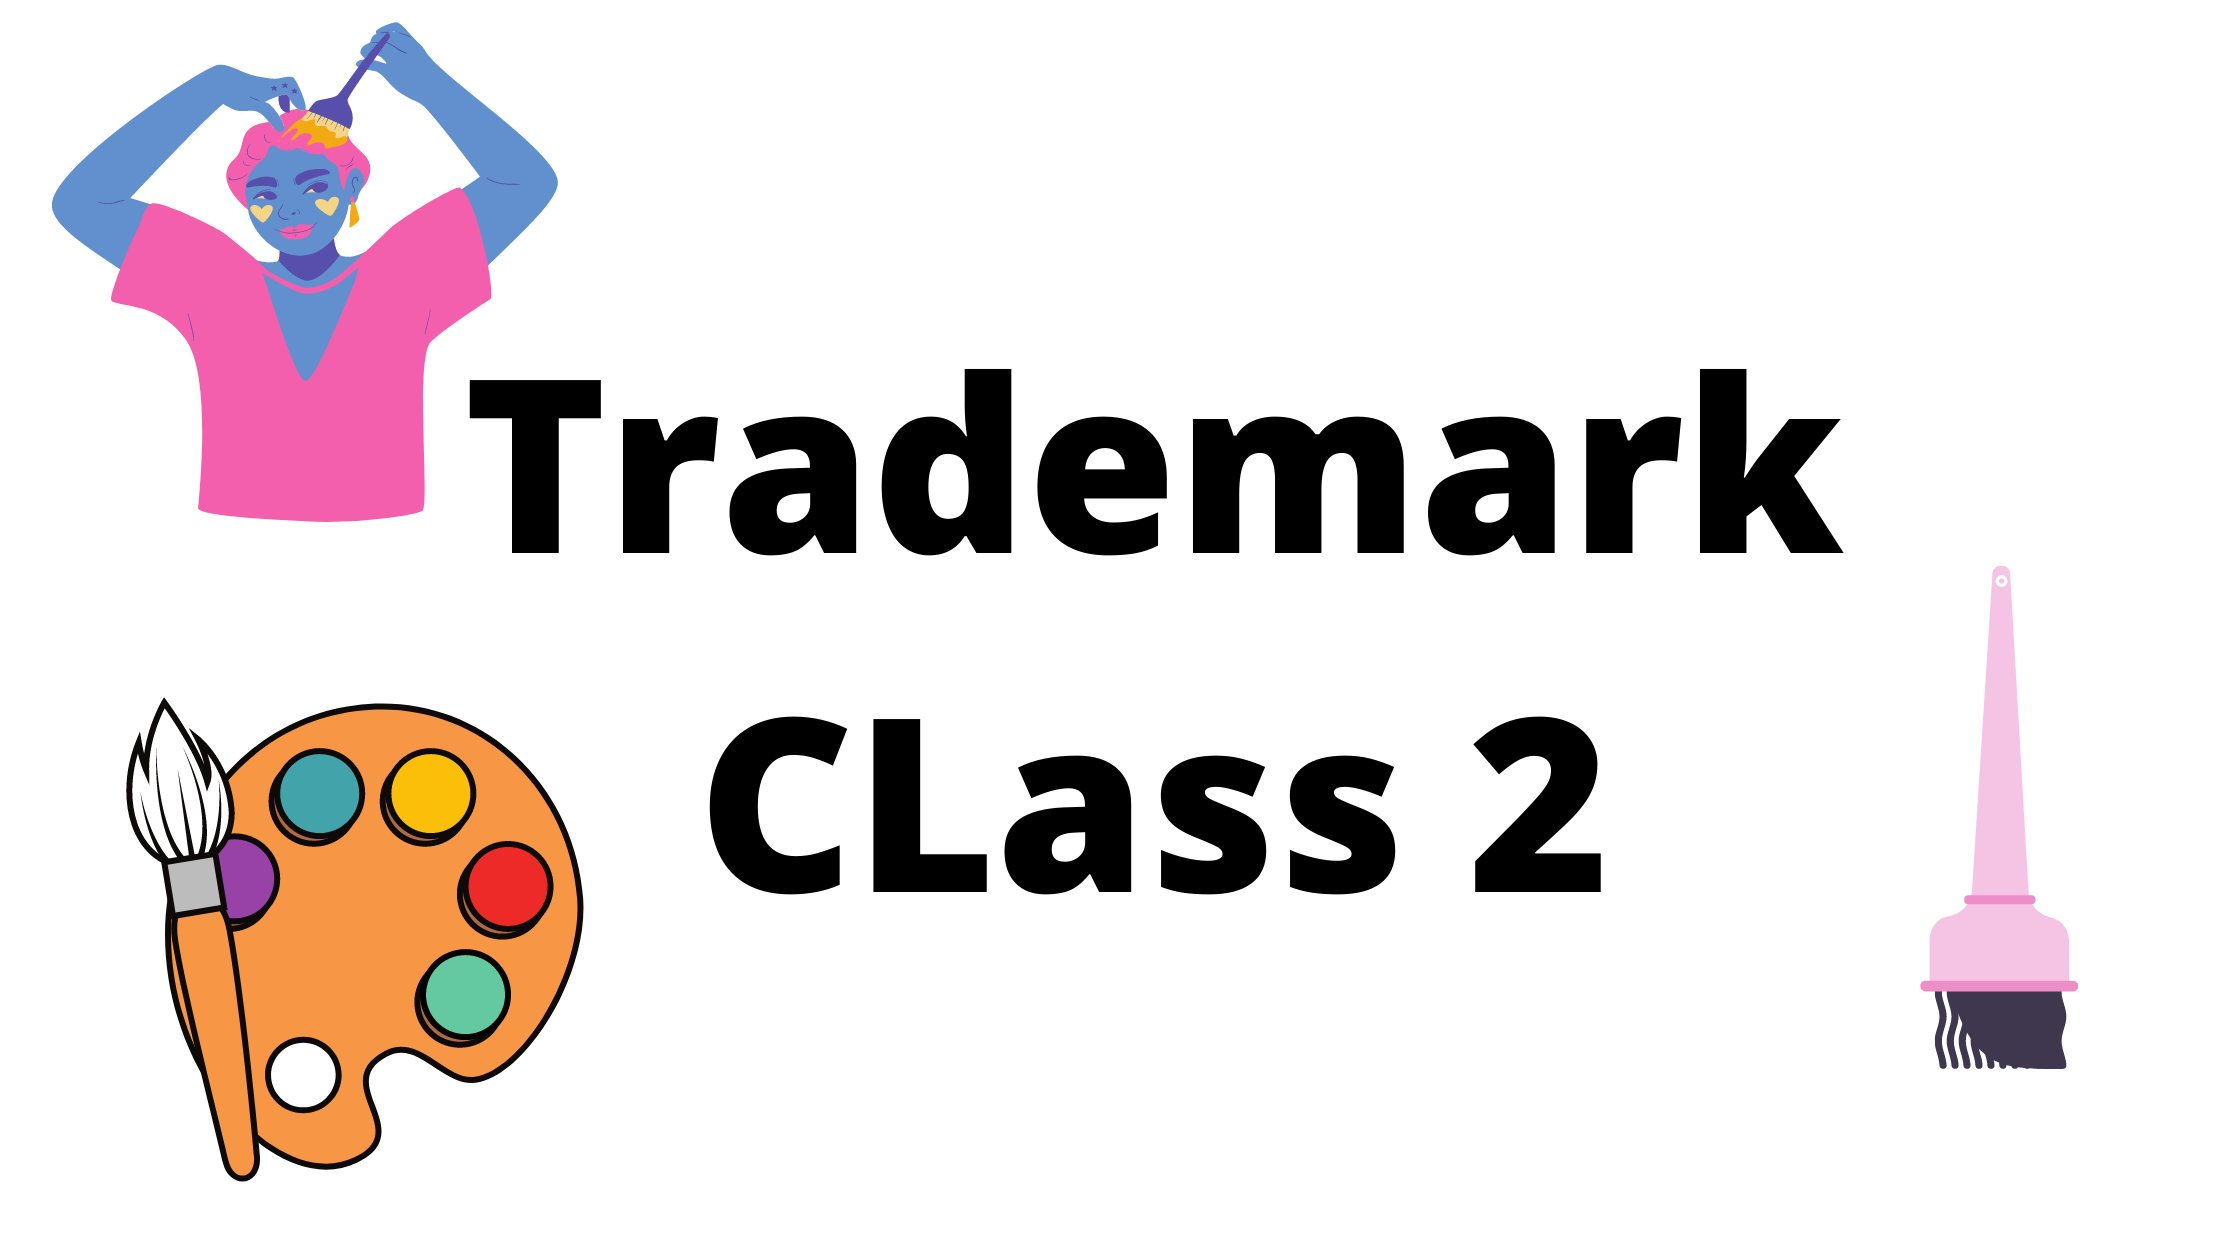 What is TRADEMARK CLASS 2